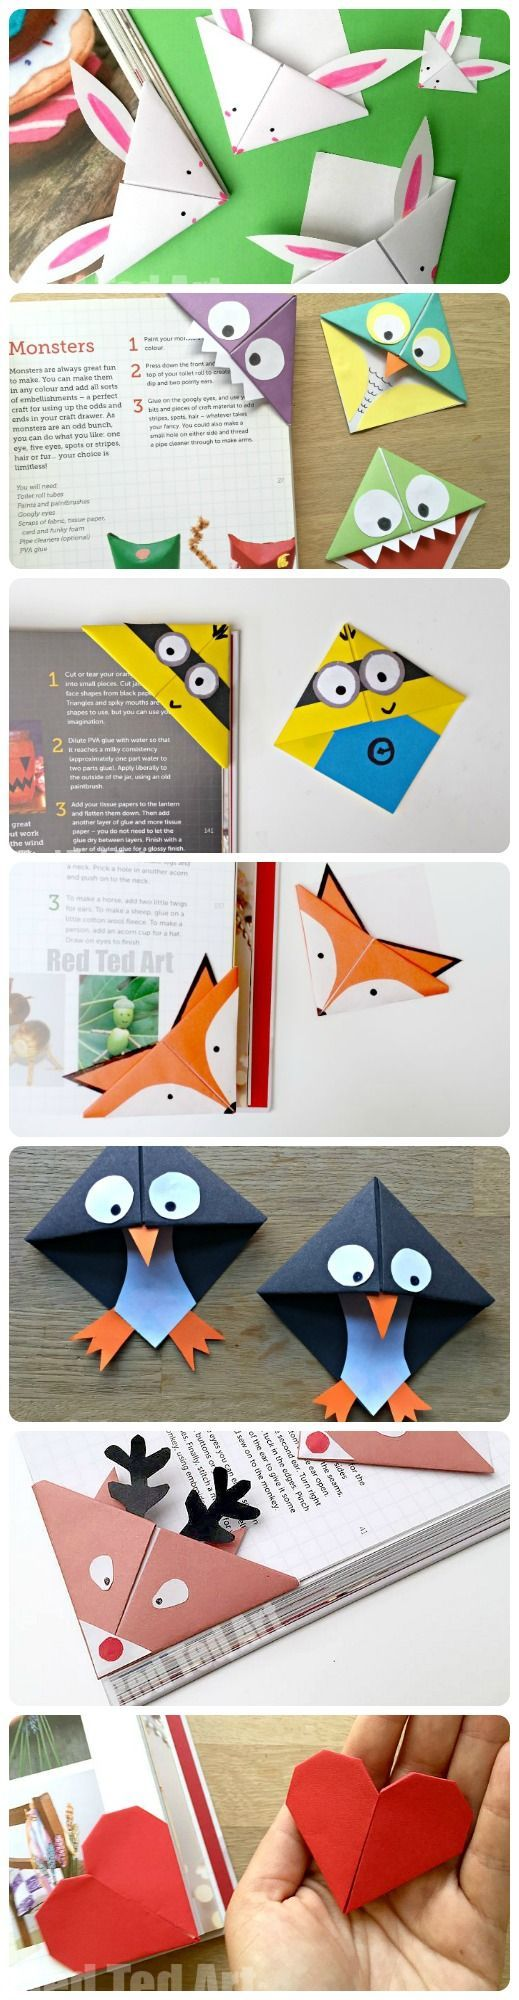 Best 25+ Bookmarks ideas on Pinterest | Book marks, Diy bookmarks ...